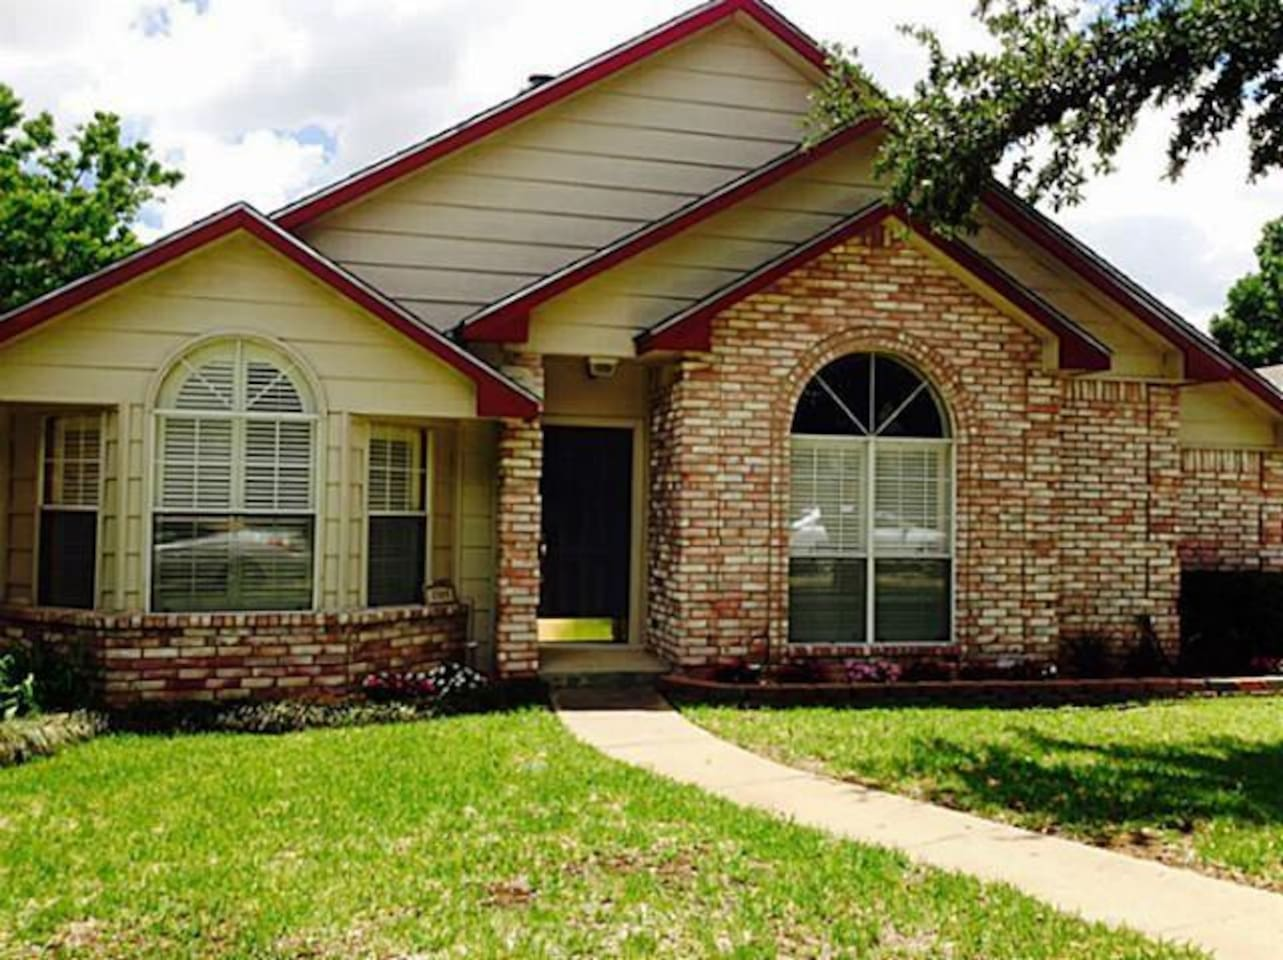 Quiet neighborhood near downtown McKinney with easy access to Dallas.